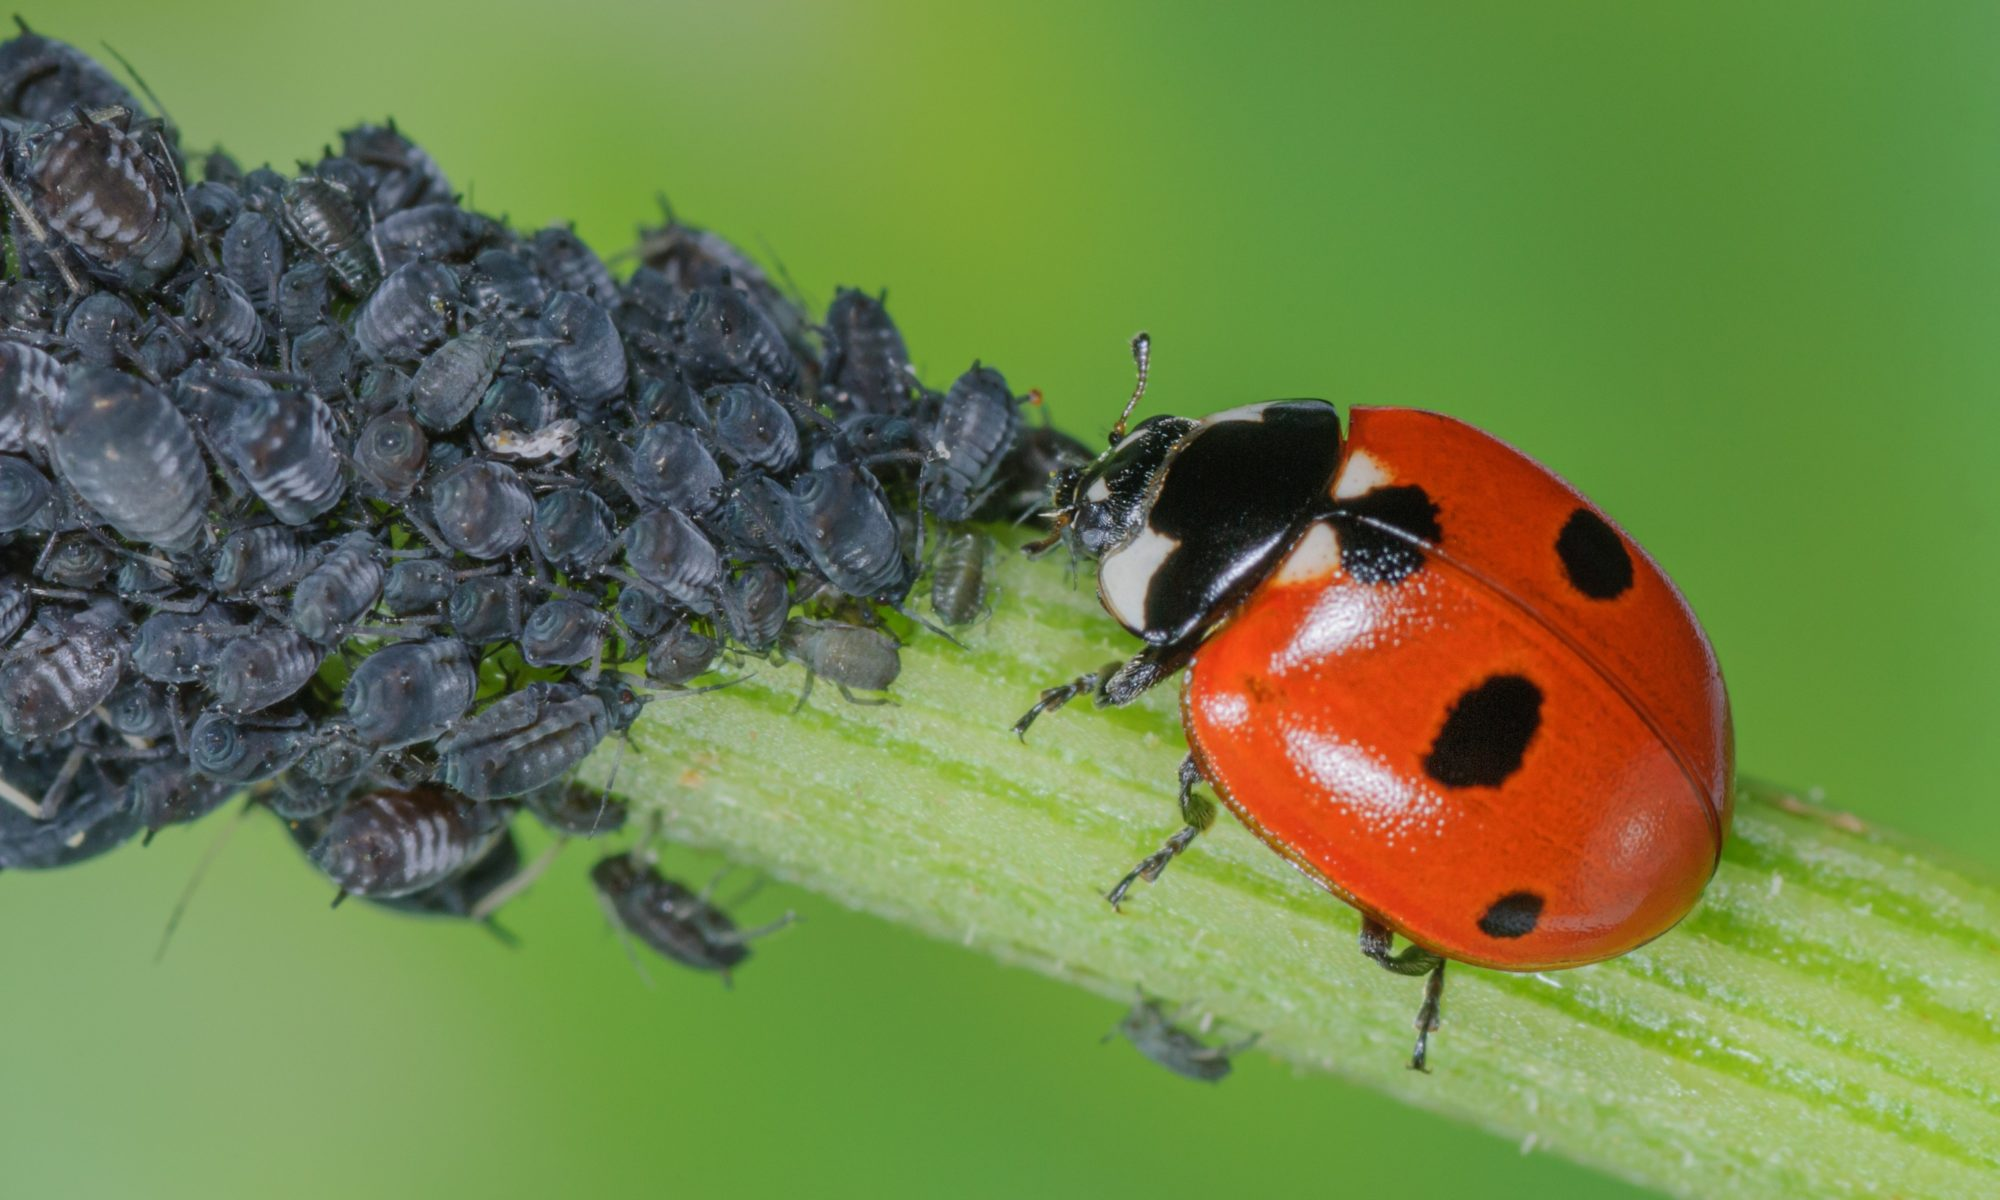 A ladybug being a beneficial isnects and hunting aphids on a plant